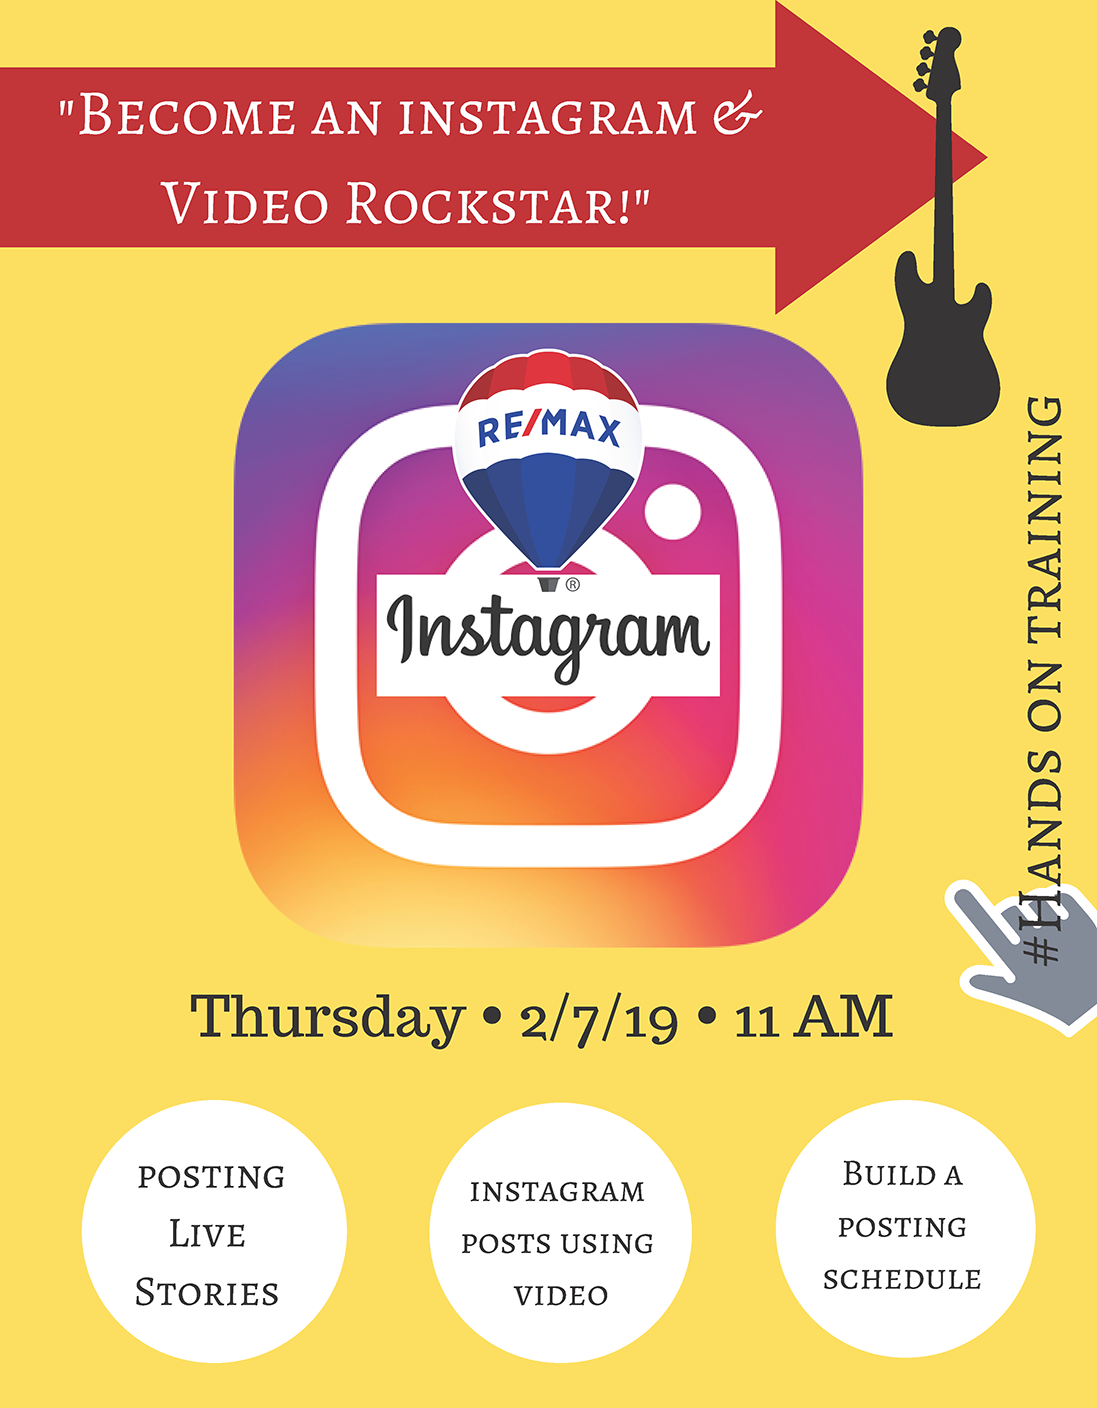 How to Become an Instagram Rockstar!